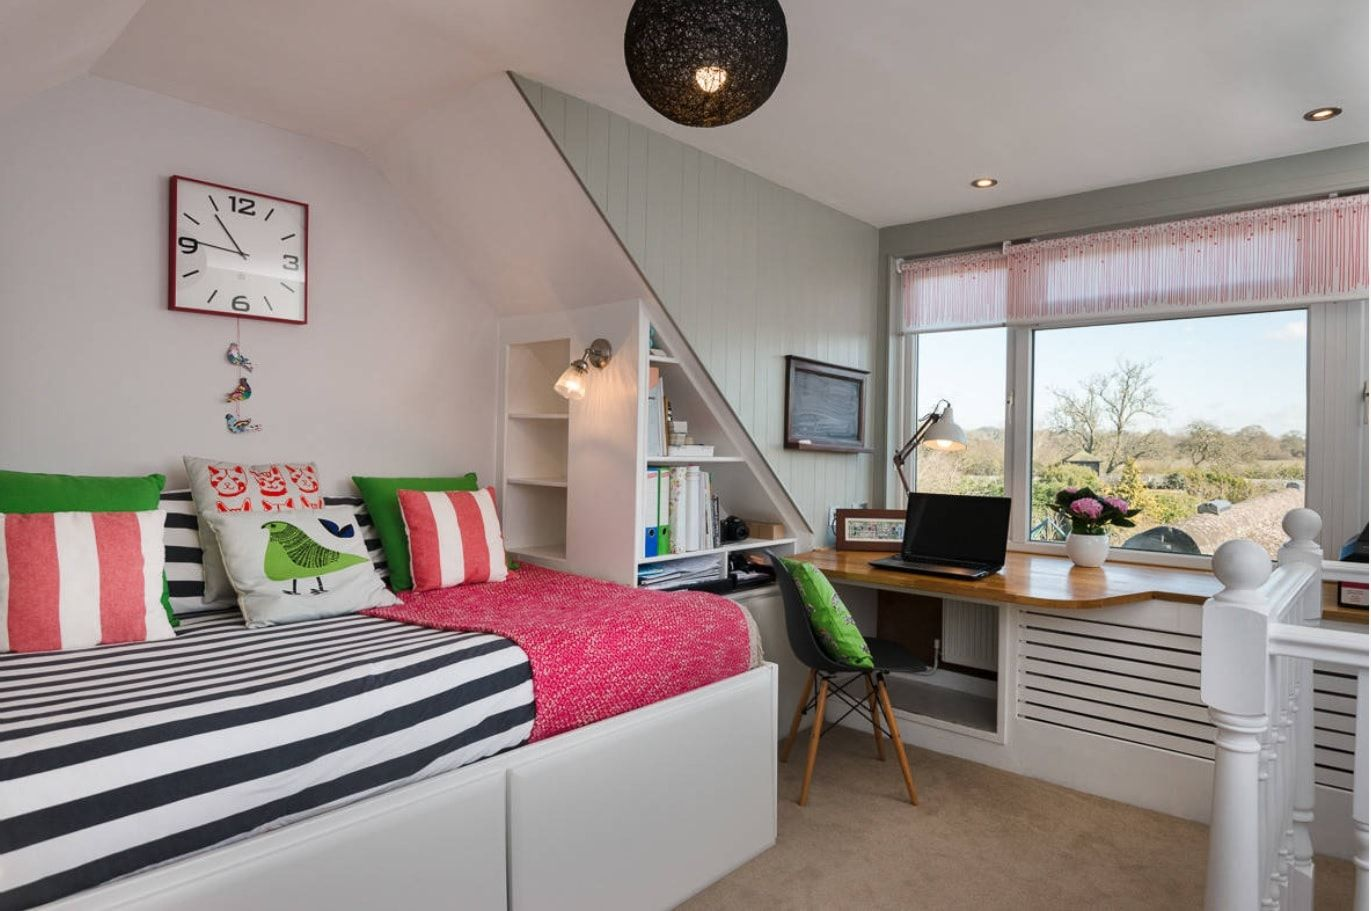 Triangle form theme for attic kids' room